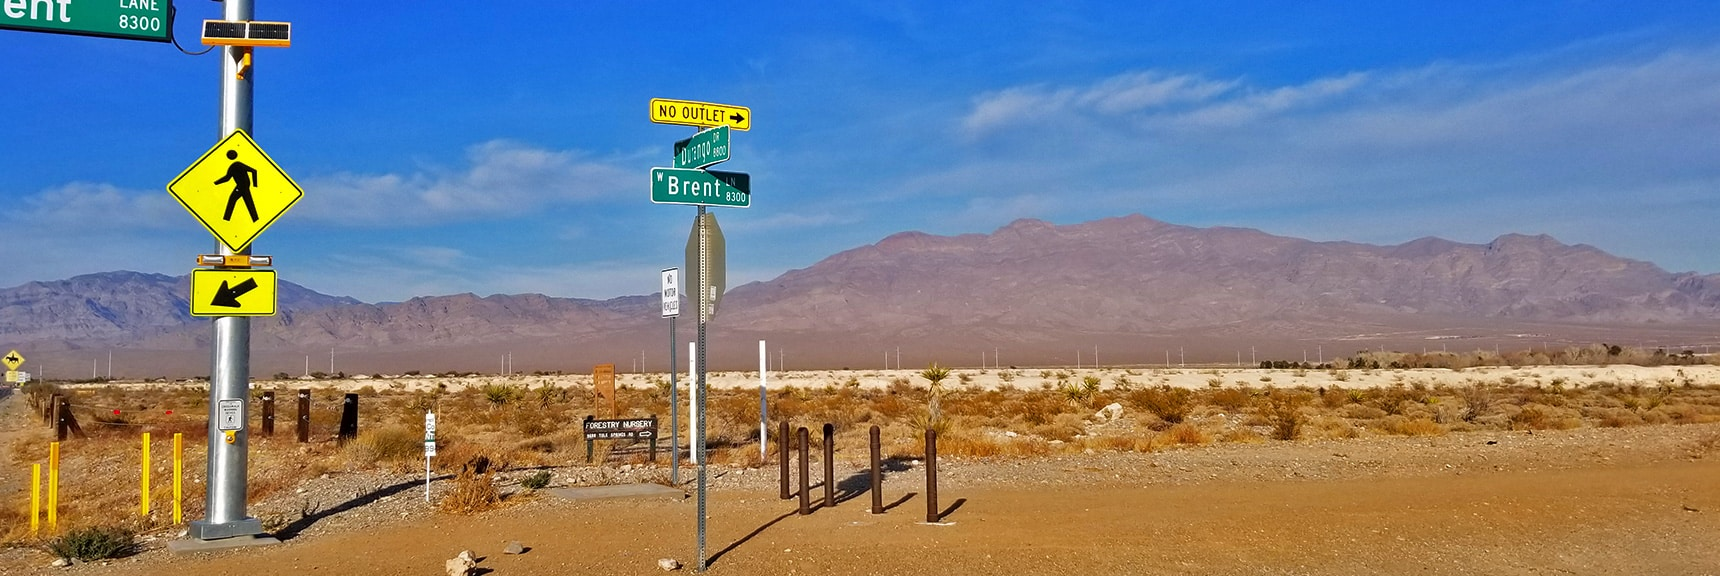 Brent and Durango, Gass Peak and Sheep Range in Background | Snapshot of Las Vegas Northern Growth Edge on January 3, 2021